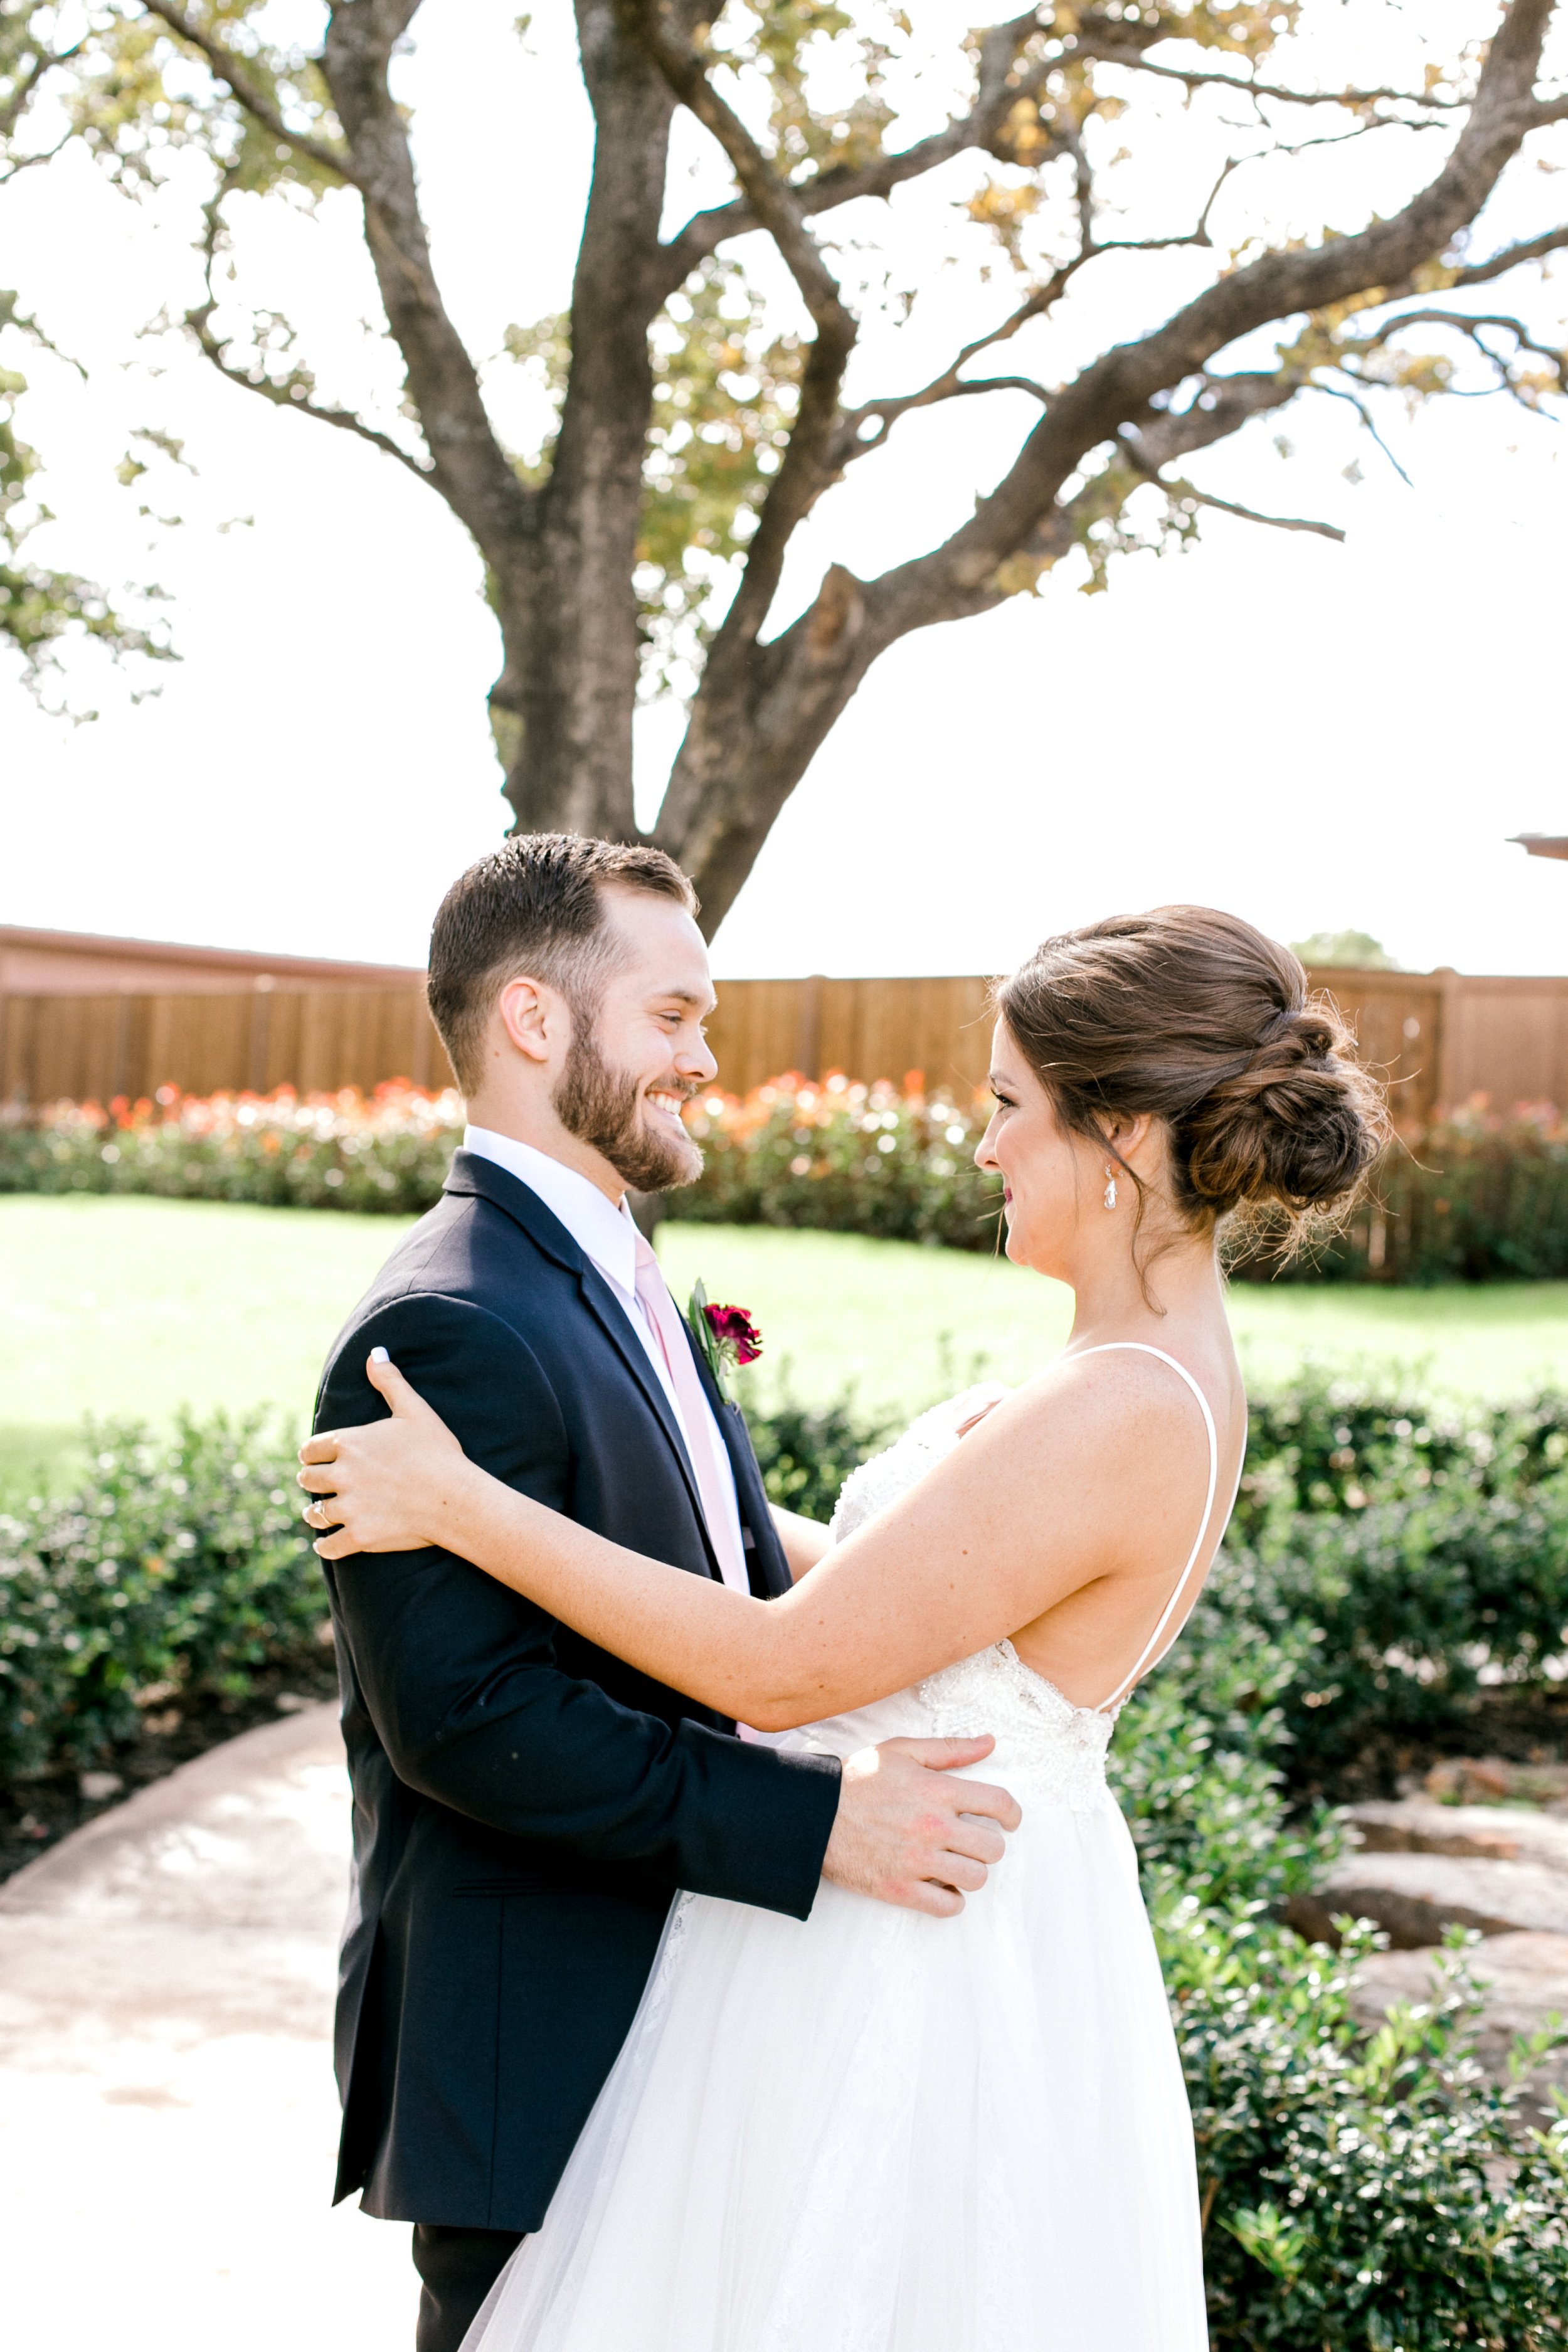 Natalie-and-Trent-Wedding-Day-THE-SPRINGS-EVENT-VENUE-Norman-Oklahoma-by-Emily-Nicole-Photo-201.jpg